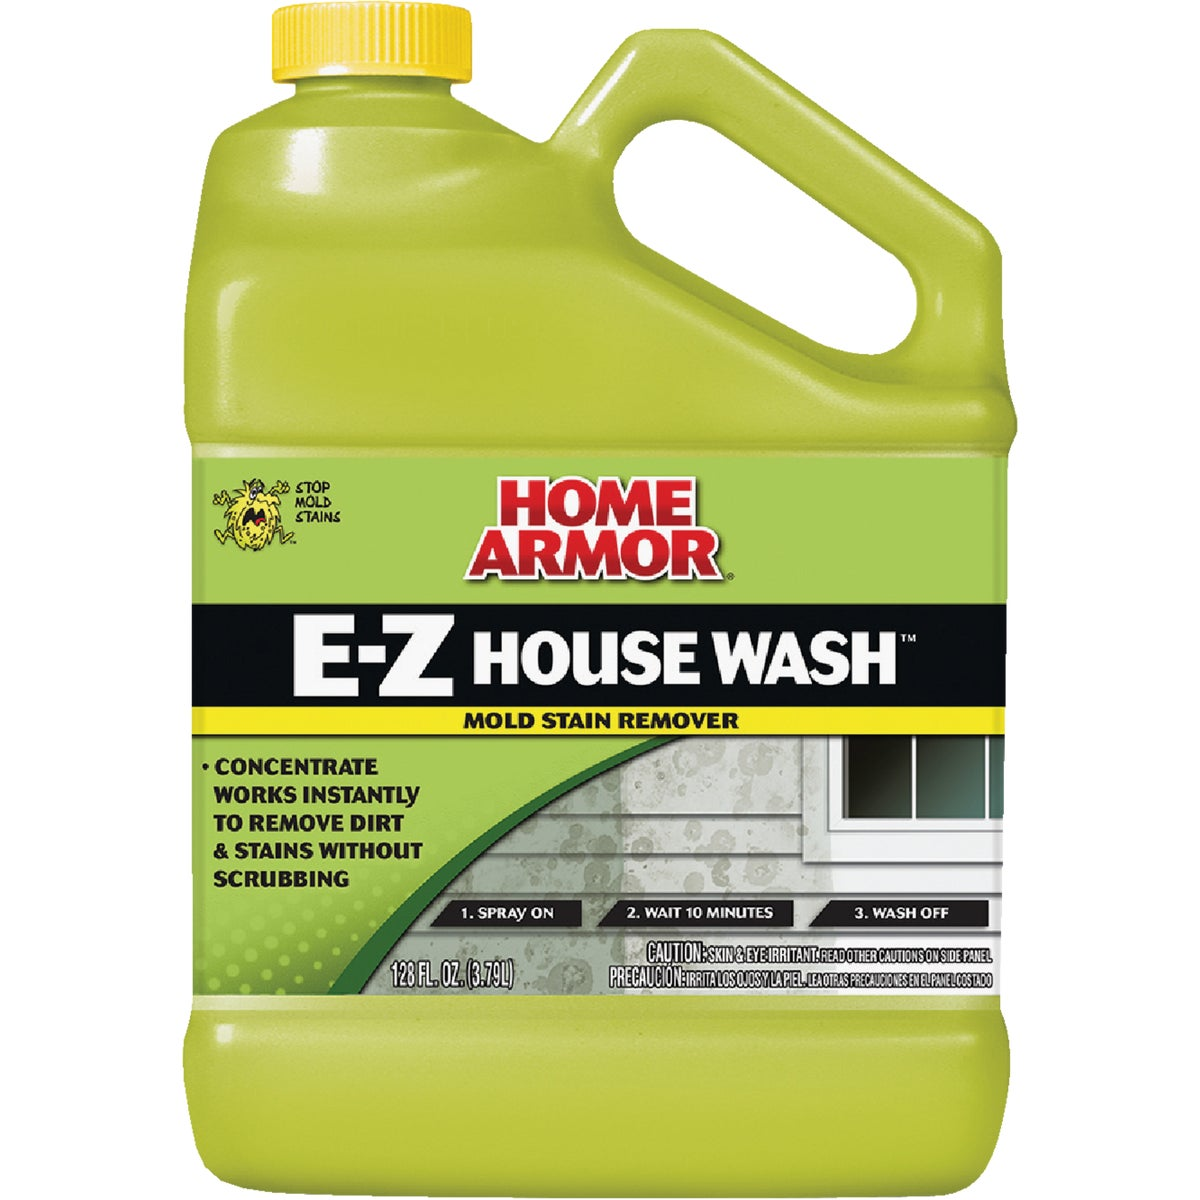 E-Z GAL HOUSE WASH - FG503 by Wm Barr